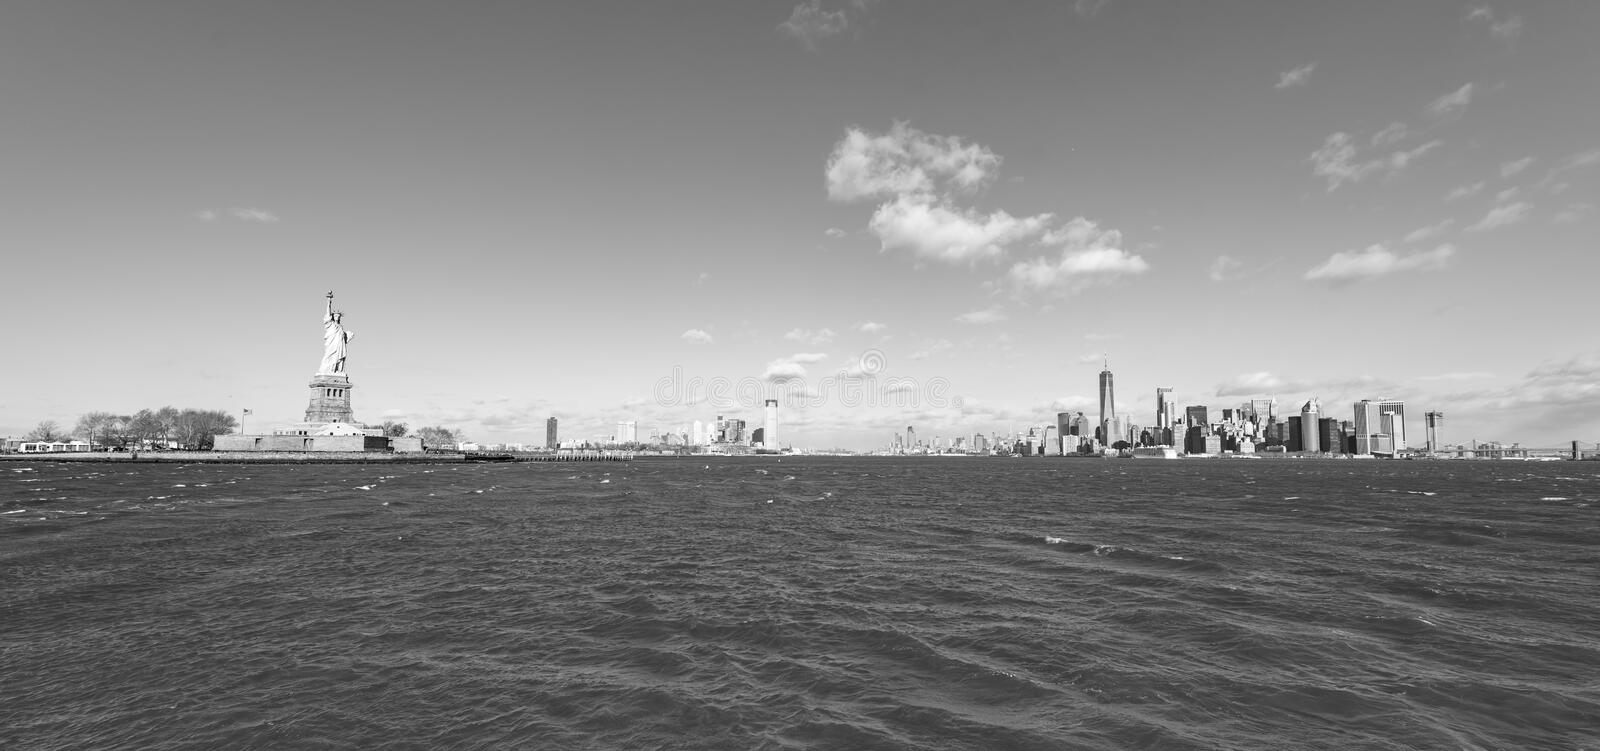 Panorama View of Statue of Liberty at New York City with Manhattan Skyline over Hudson River - USA royalty free stock photos